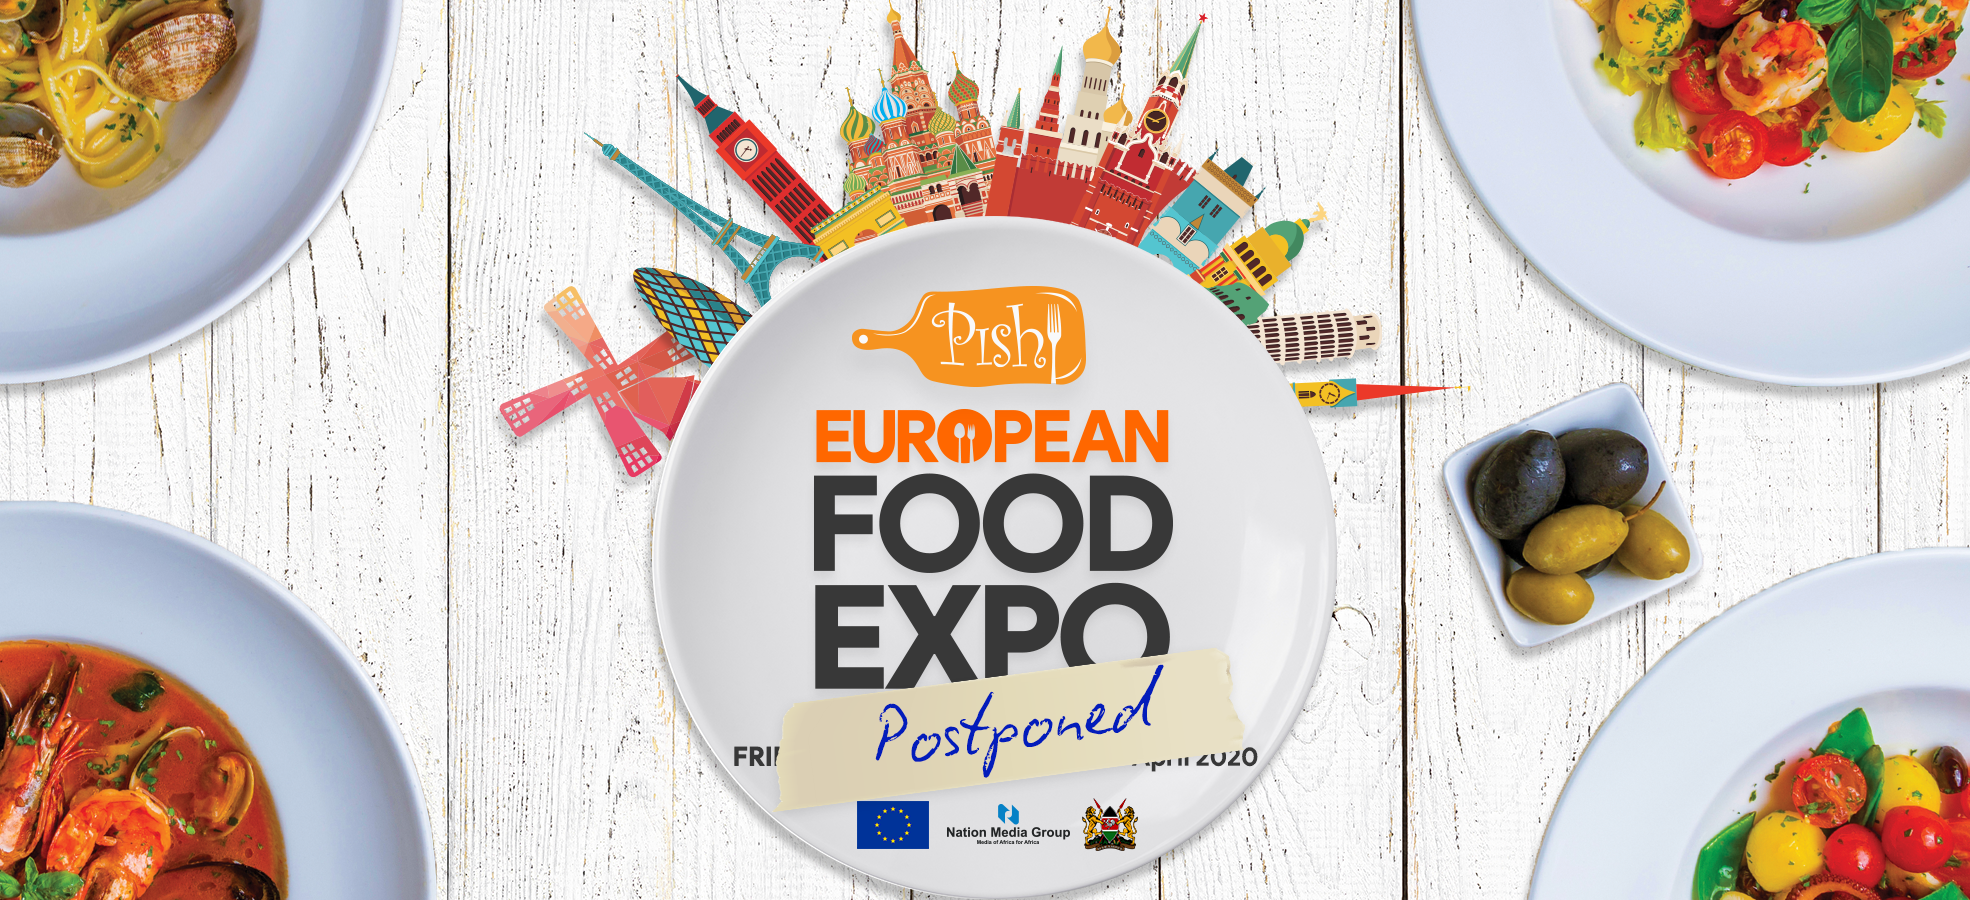 The PISHI European Food Expo